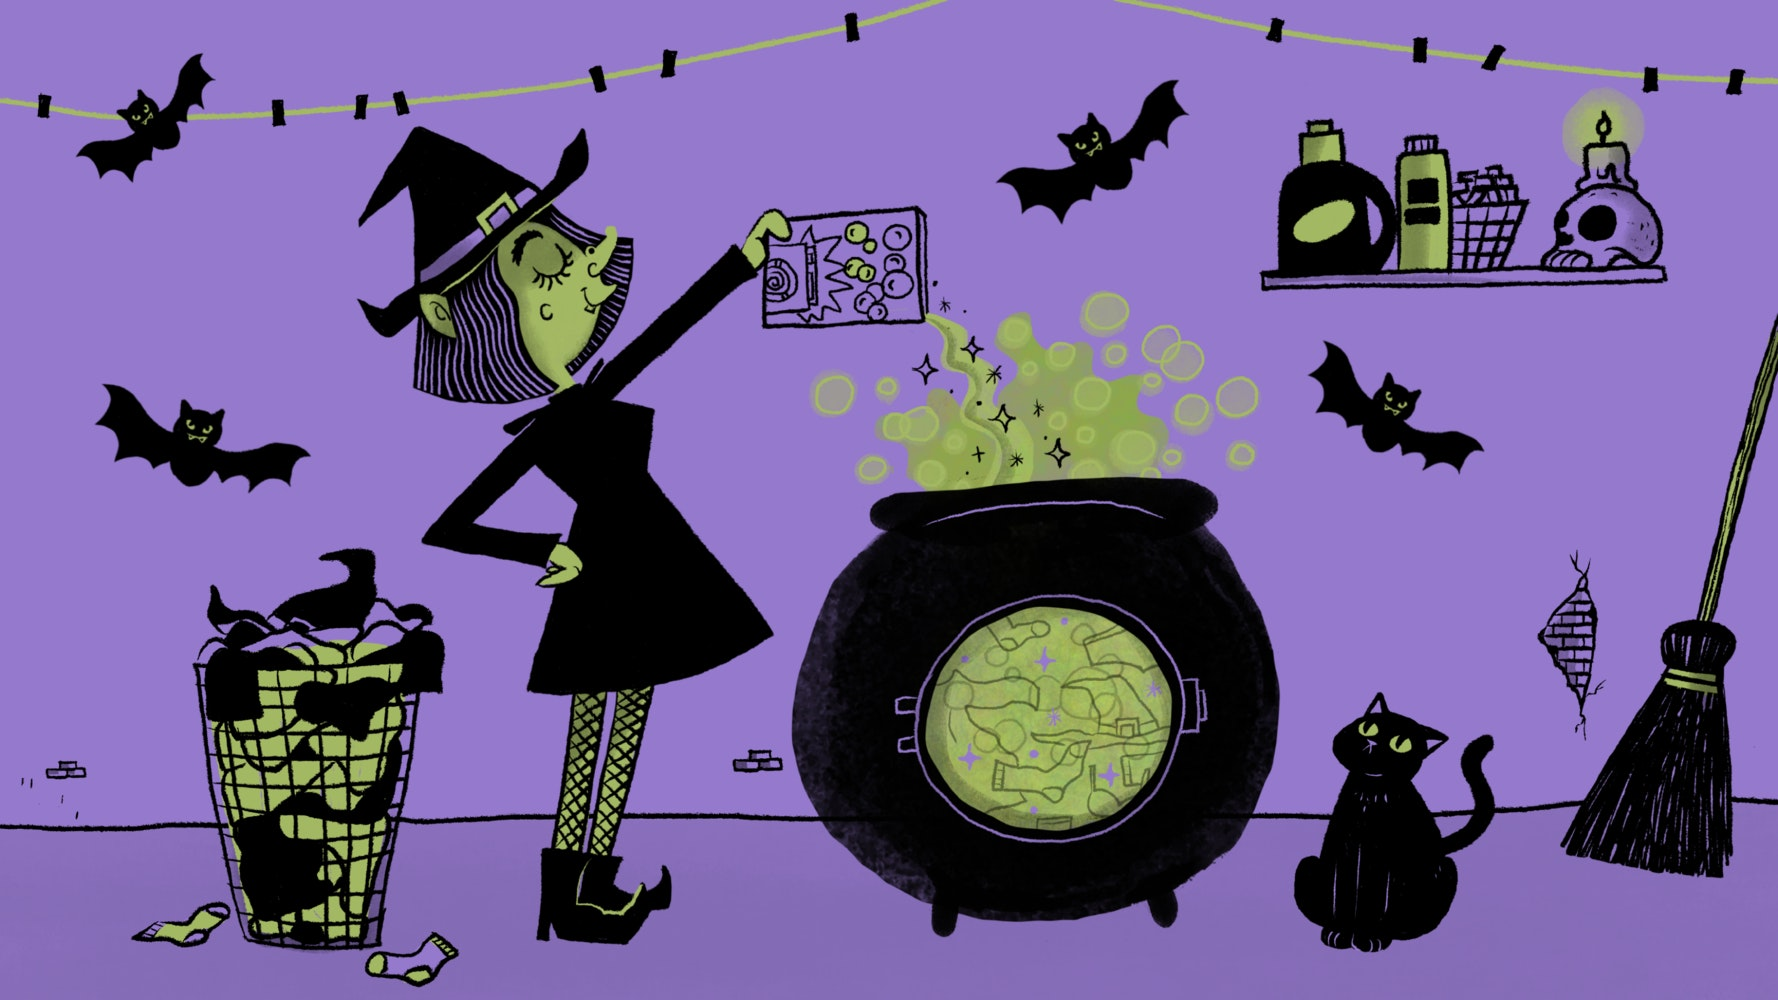 Halloween witch making a potion in a large cauldron